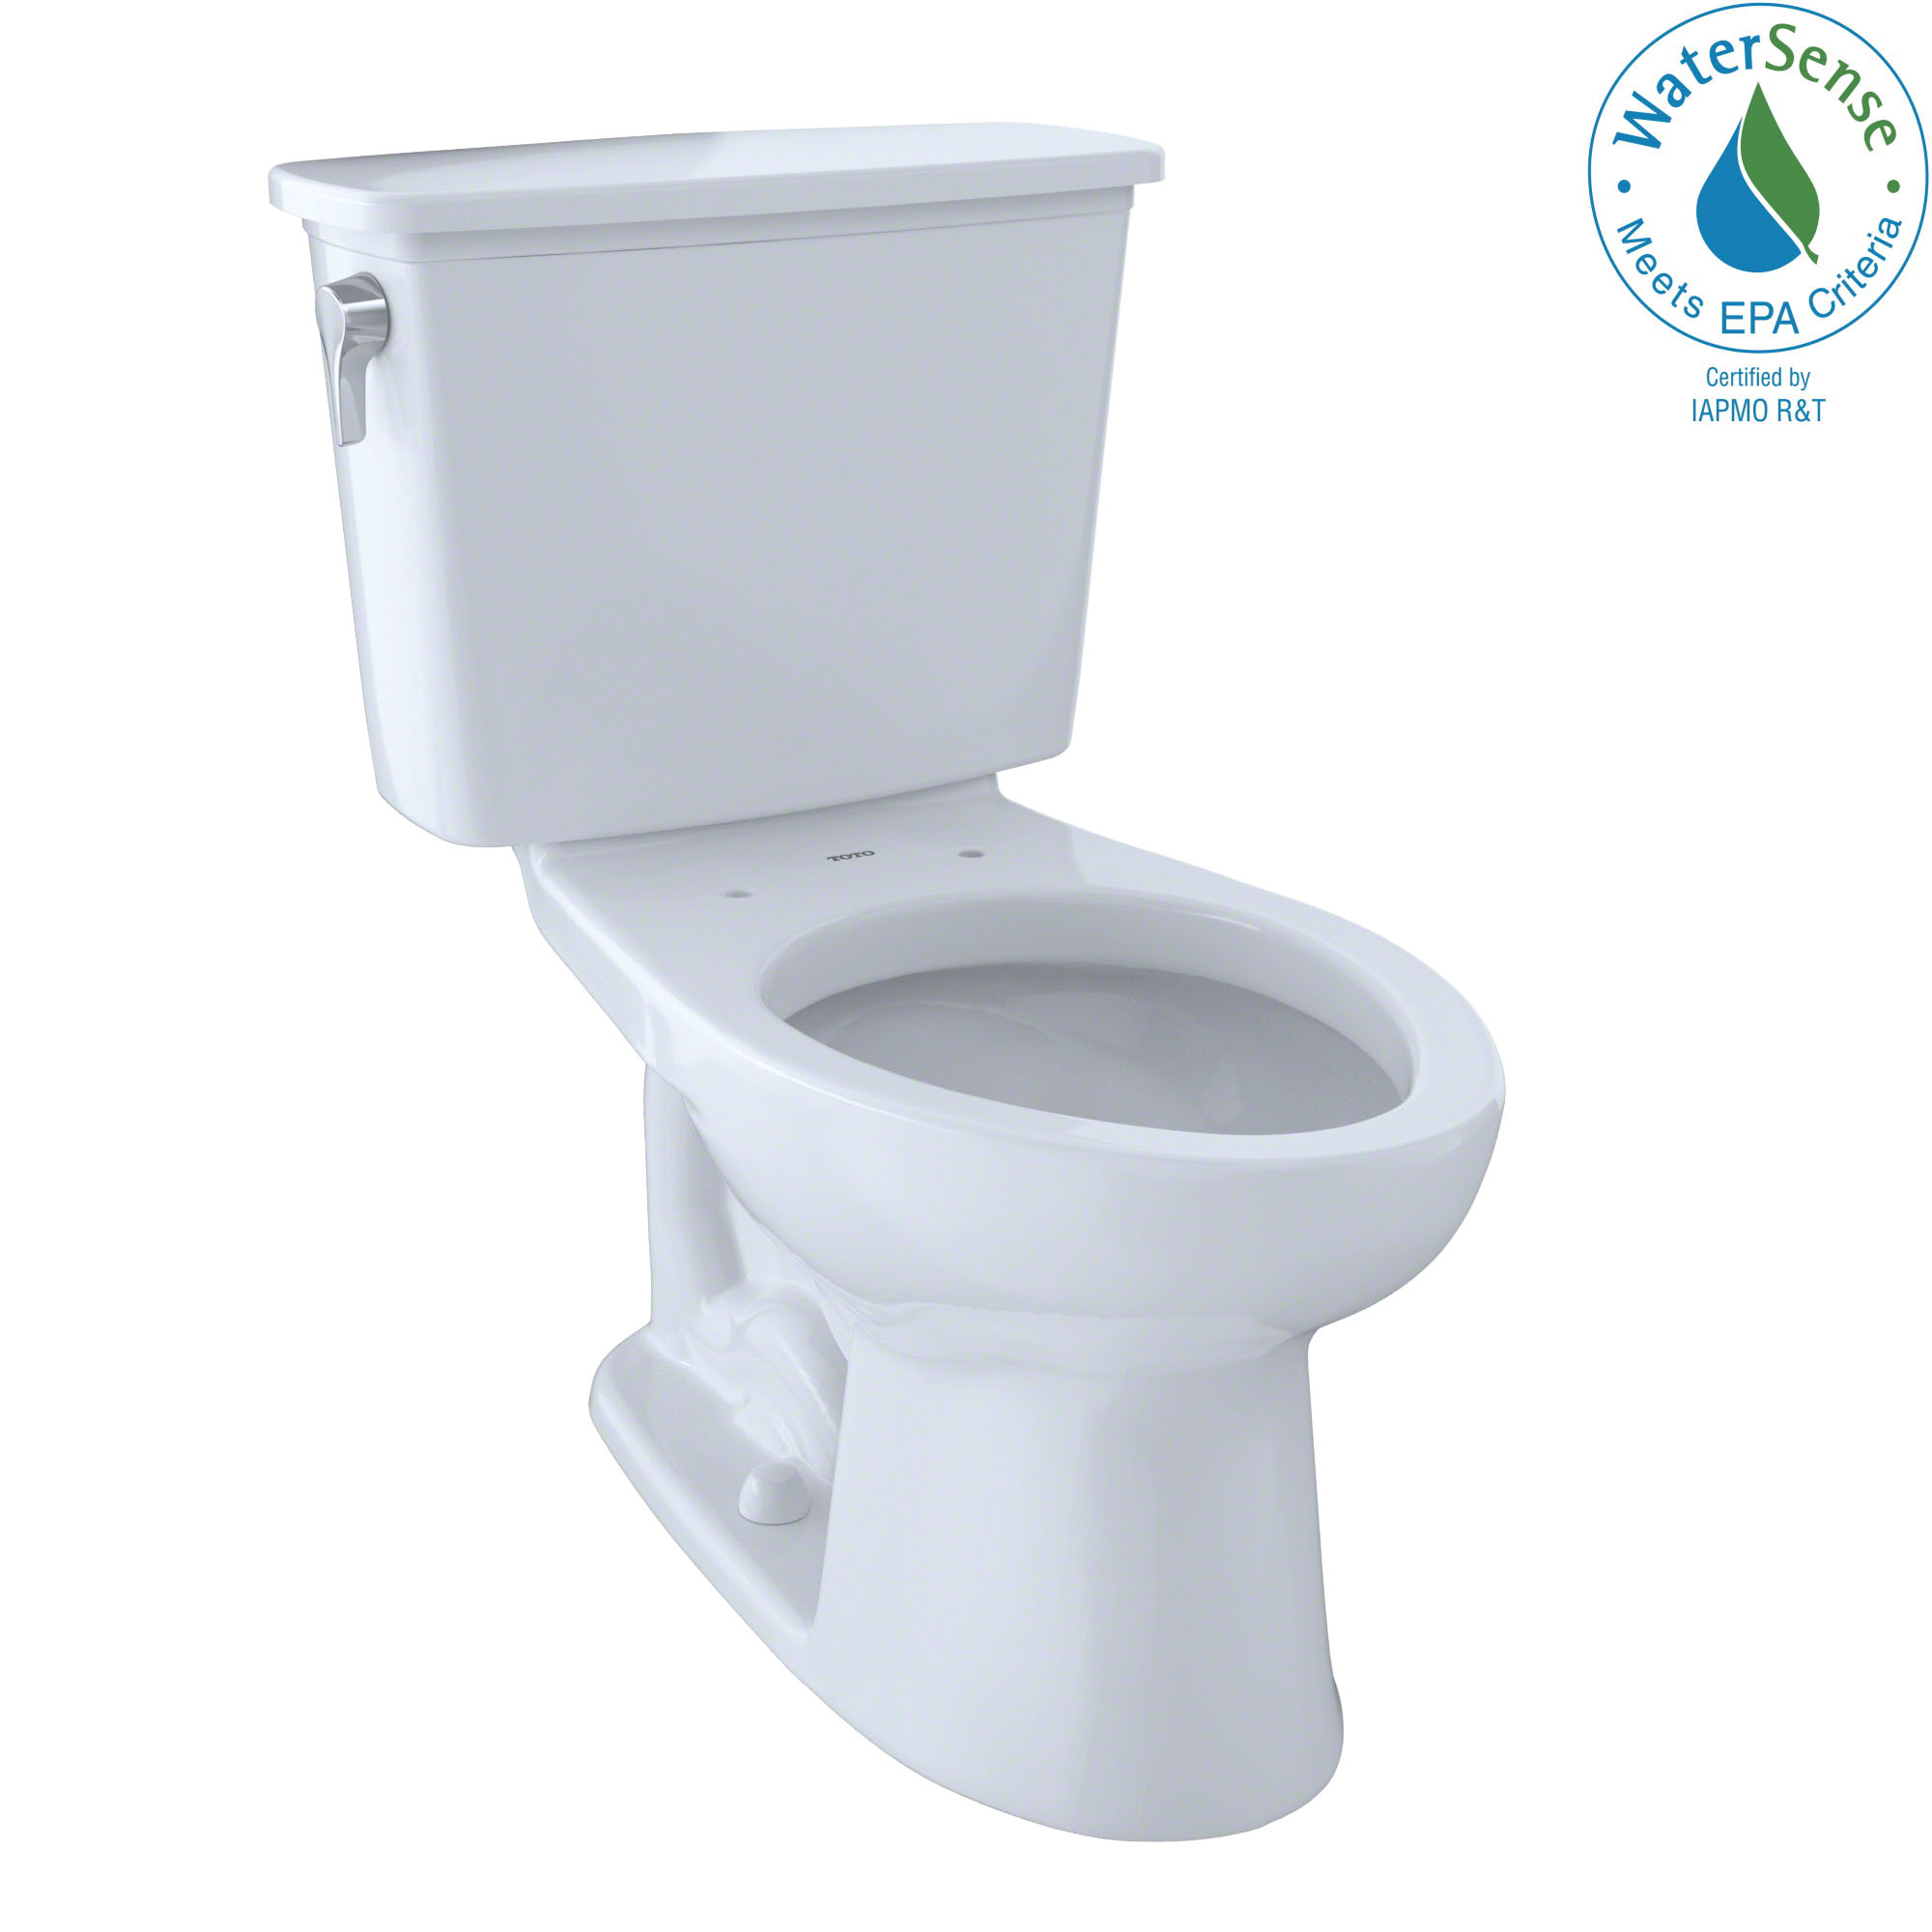 Toto® CST744ELN#01 2-Piece Transitional Universal Height Toilet With Left-Hand Chrome Trip Lever, Eco Drake®, Elongated Bowl, 17-5/8 in H Rim, 12 in Rough-In, 1.28 gpf, Cotton White, Import